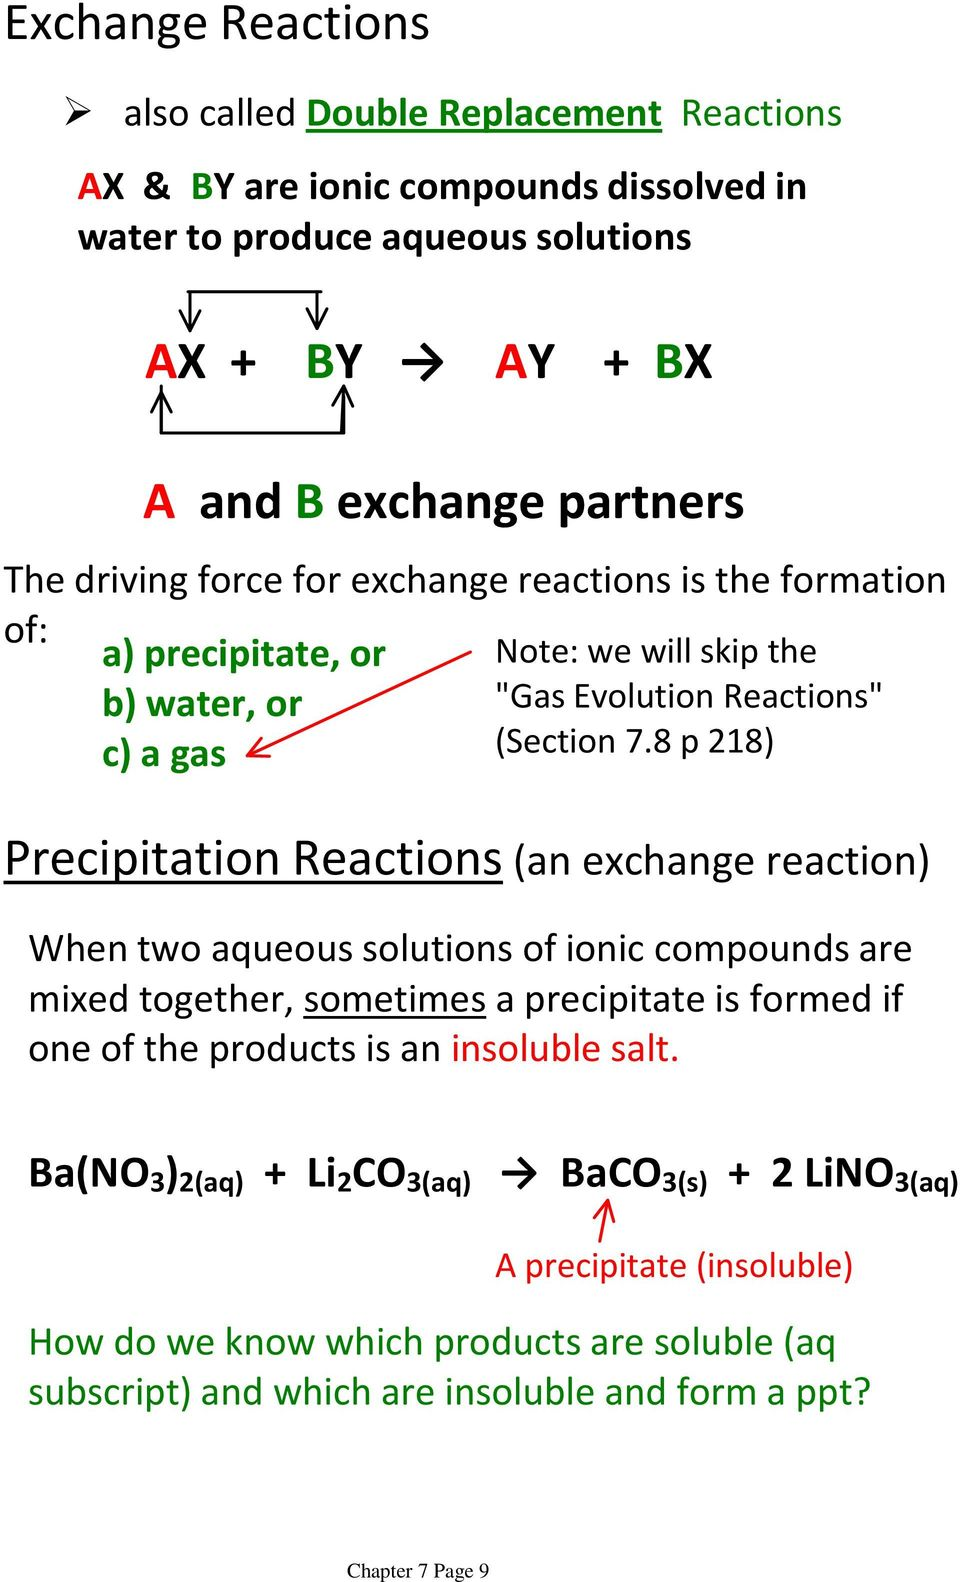 Chapter 7: Chemical Reactions - PDF